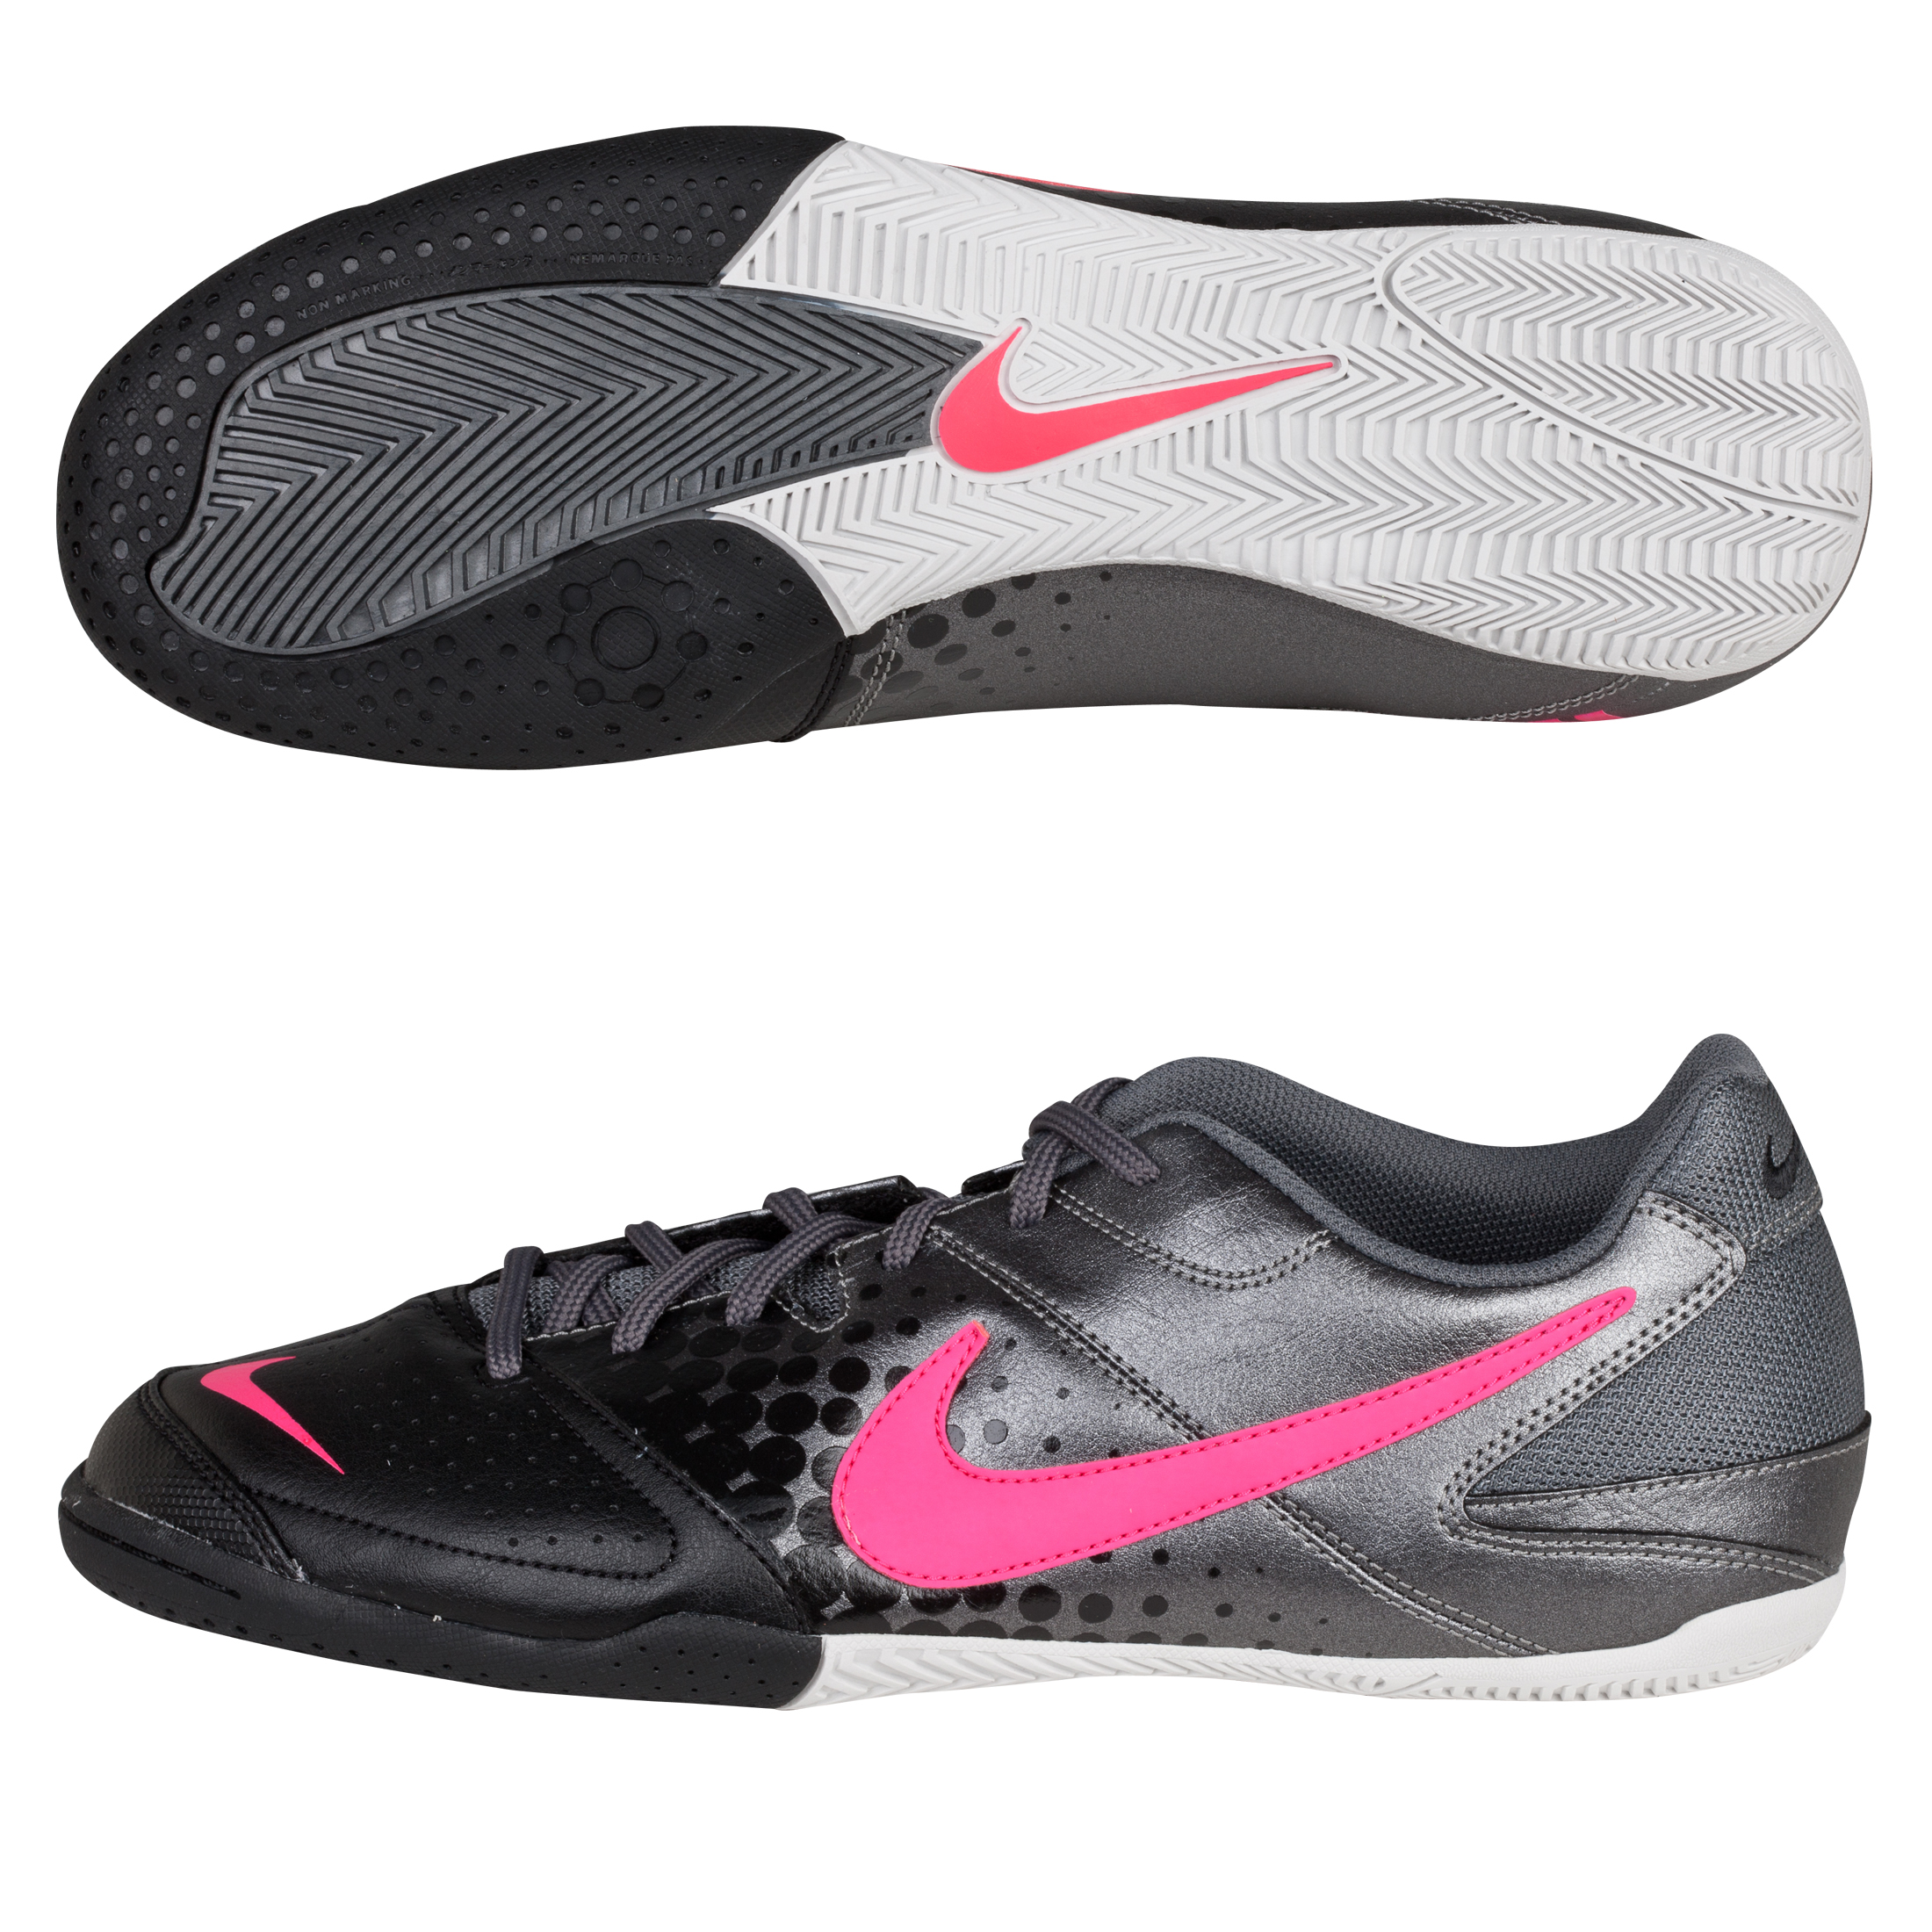 Nike5 Elastico Trainers - Metallic Dark Grey/Cherry/Black